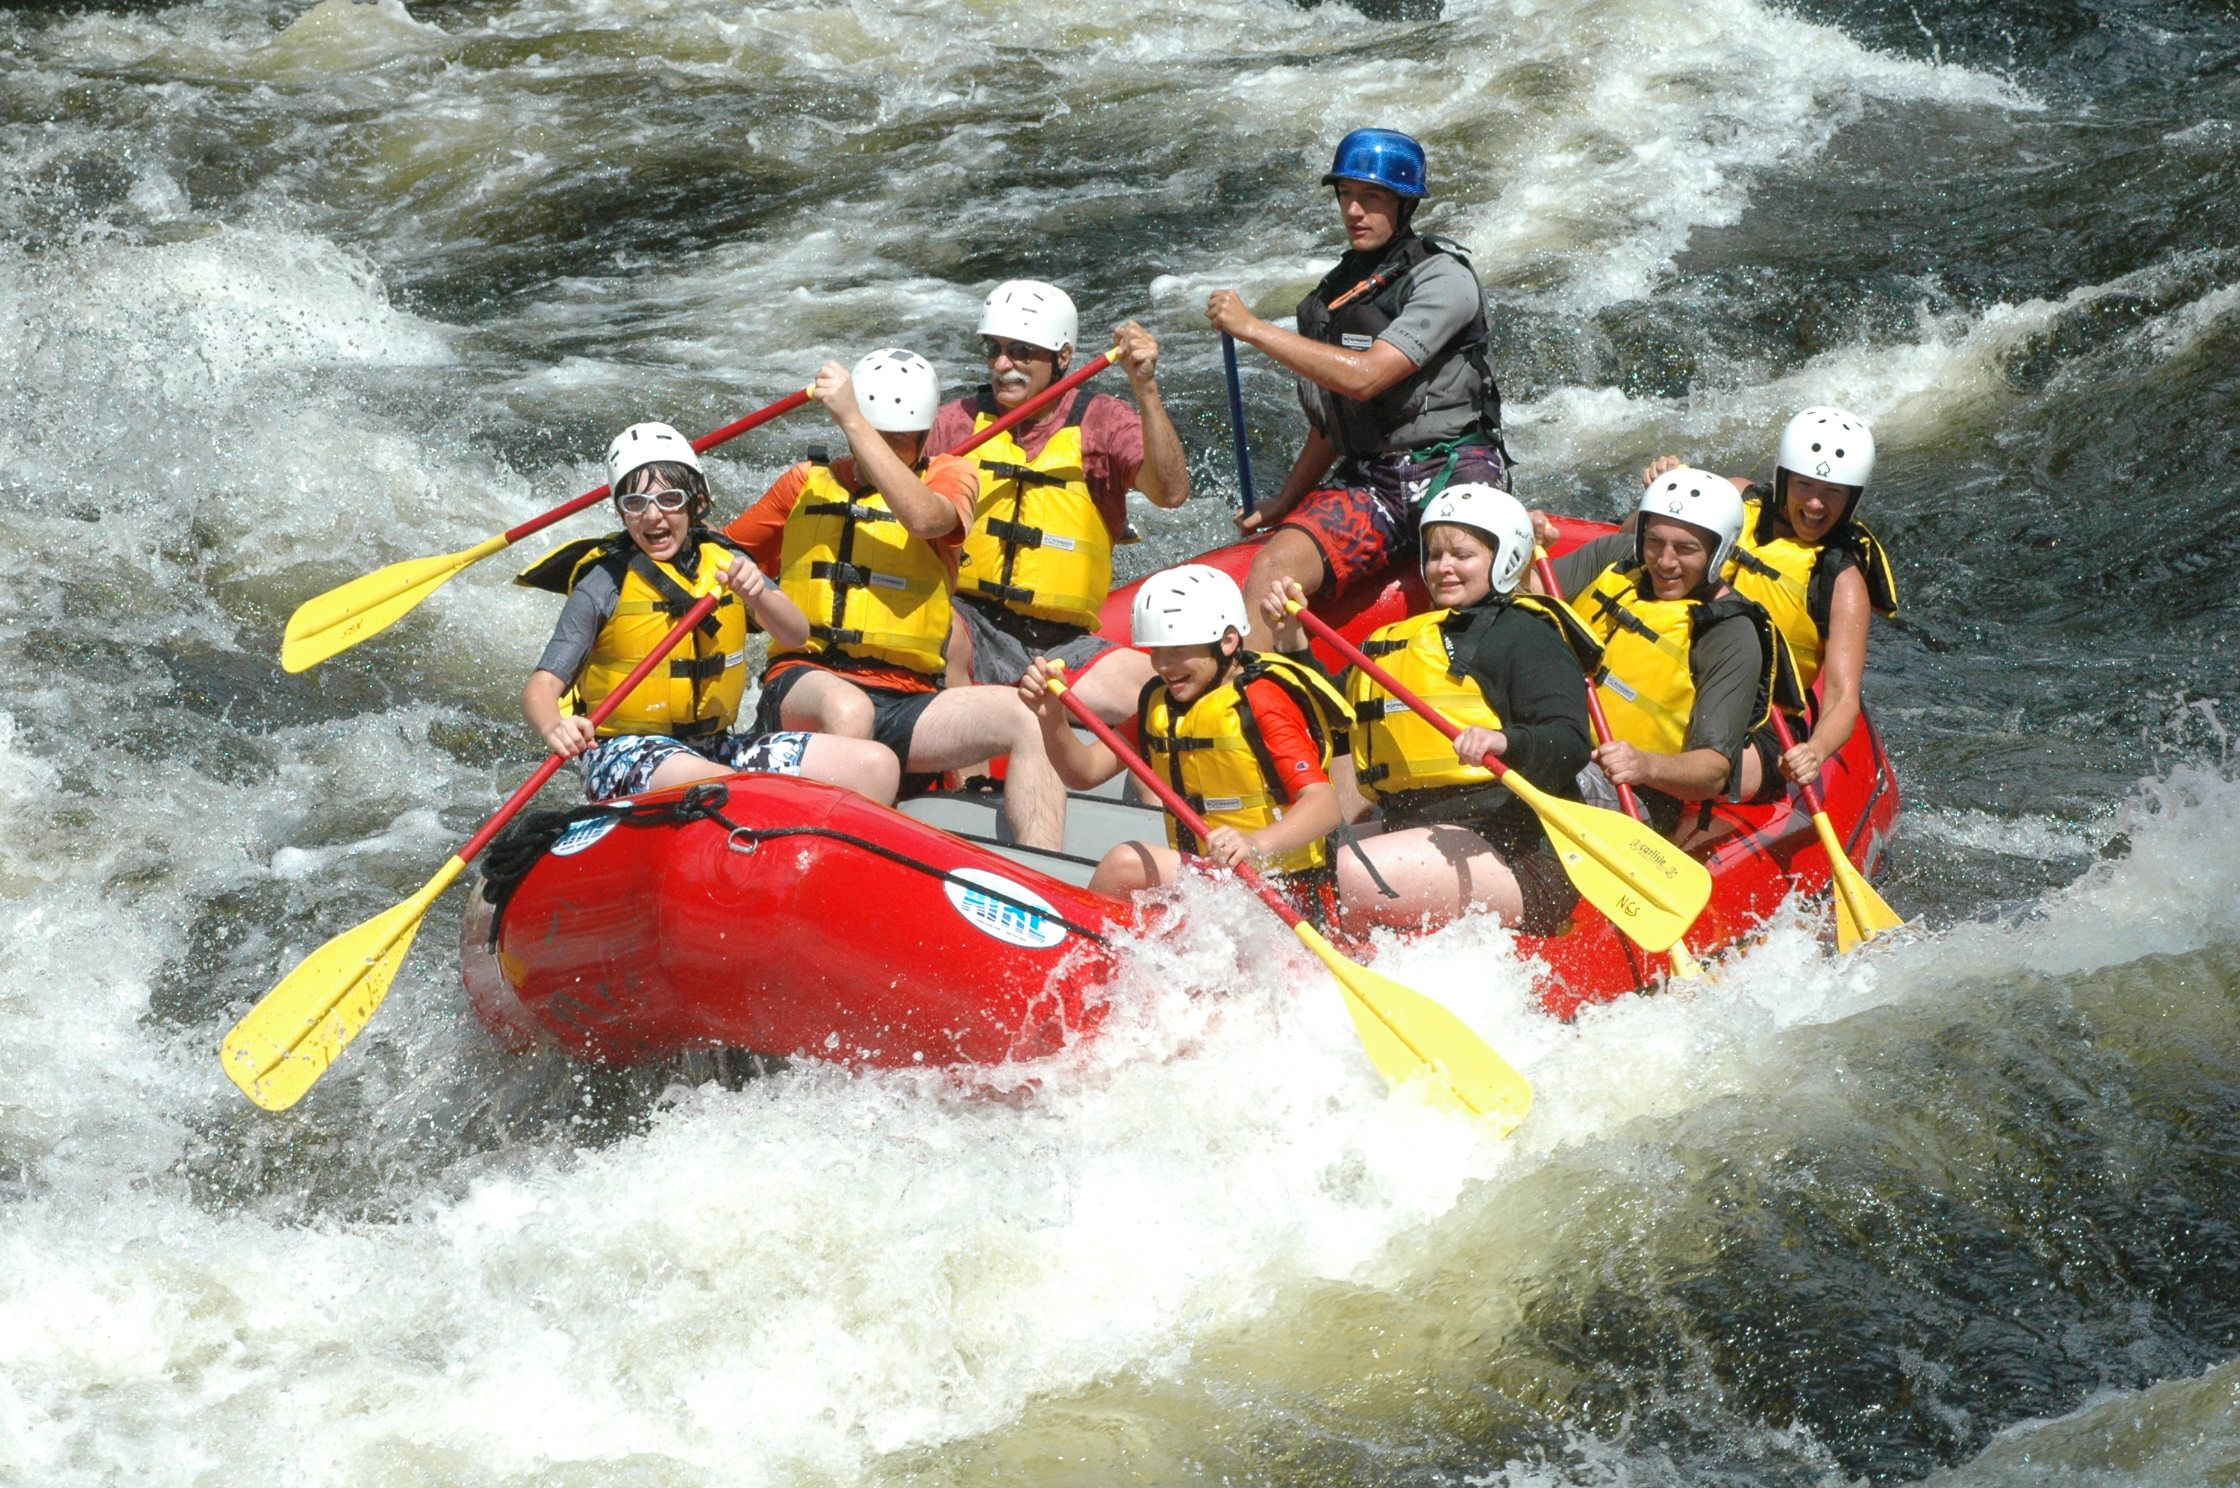 Youth and family whitewater rafting trips available on 3